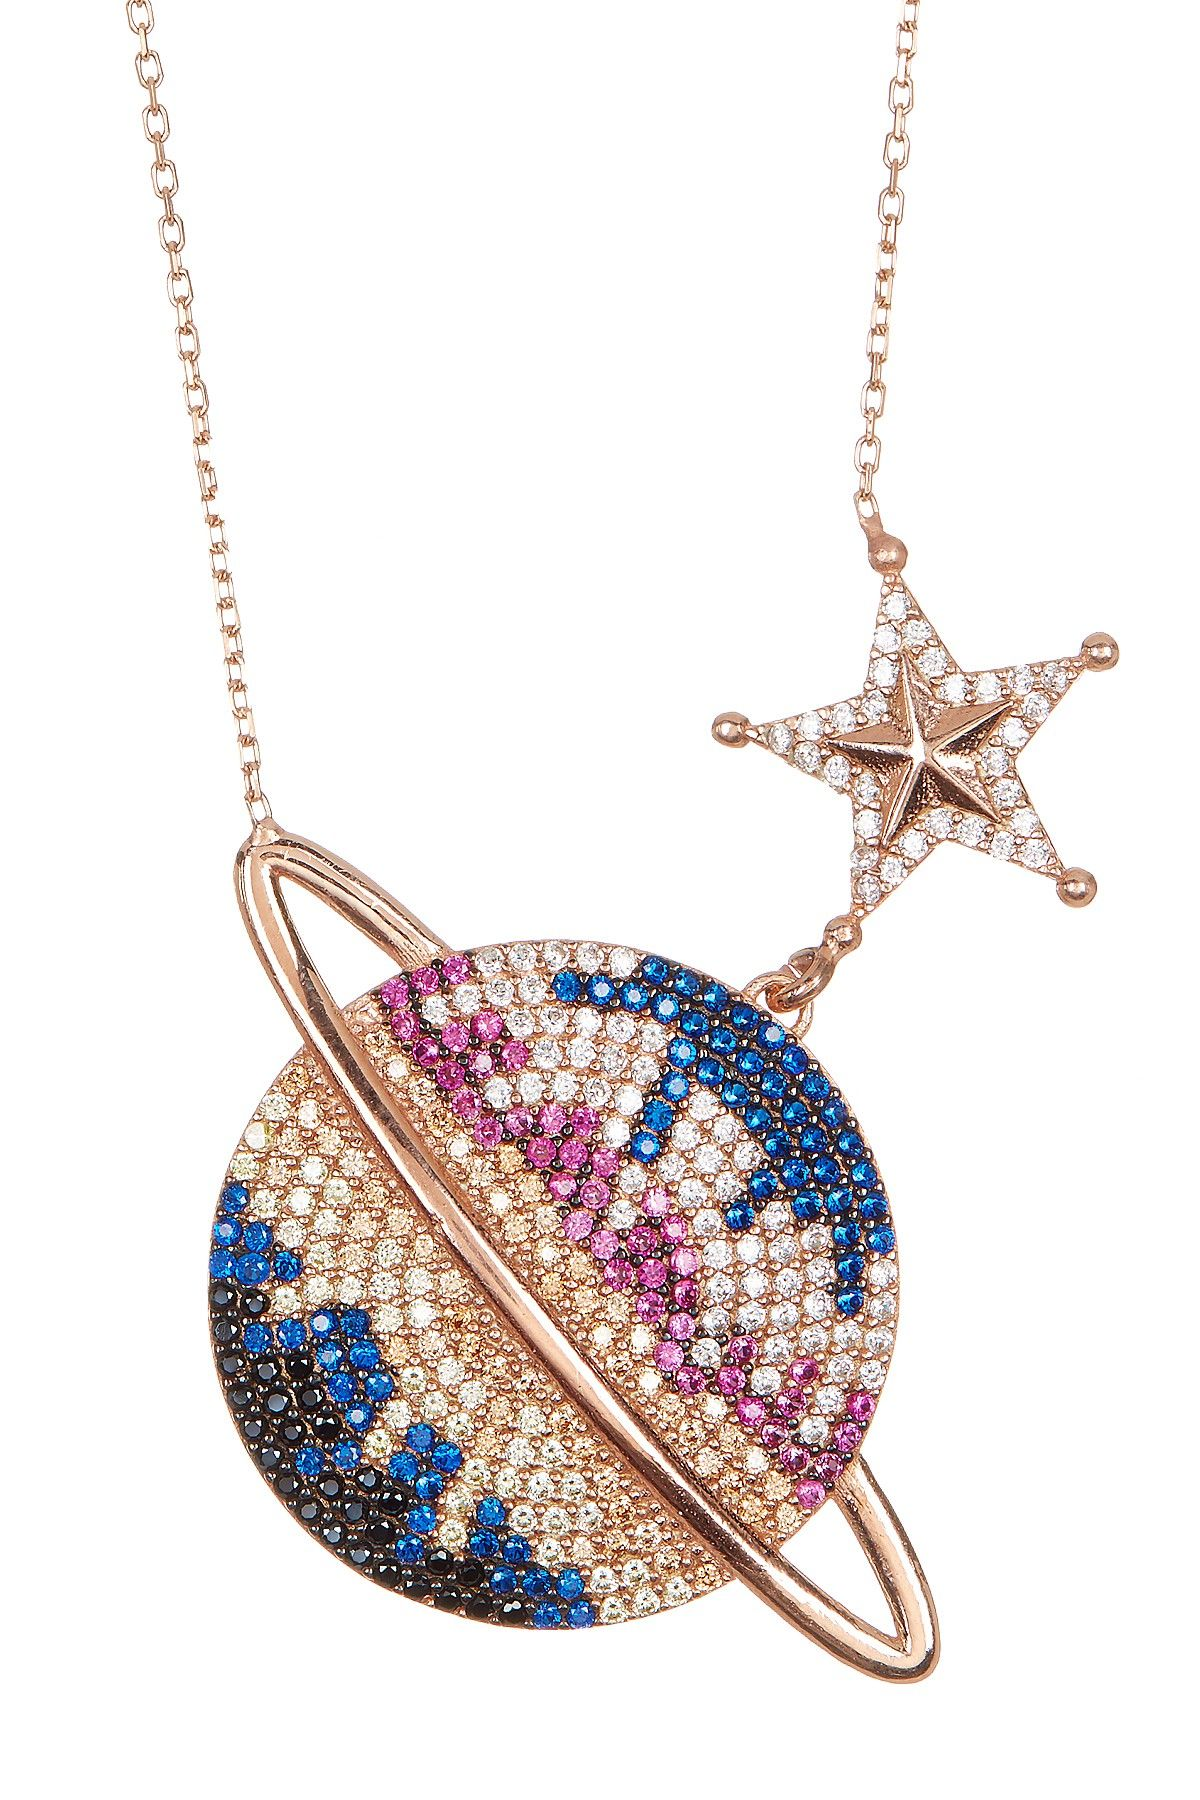 9ff353a70 18K Rose Gold Plated Sterling Silver Multicolor Swarovski Crystal Accented  Planet Necklace by Bansri on @HauteLook